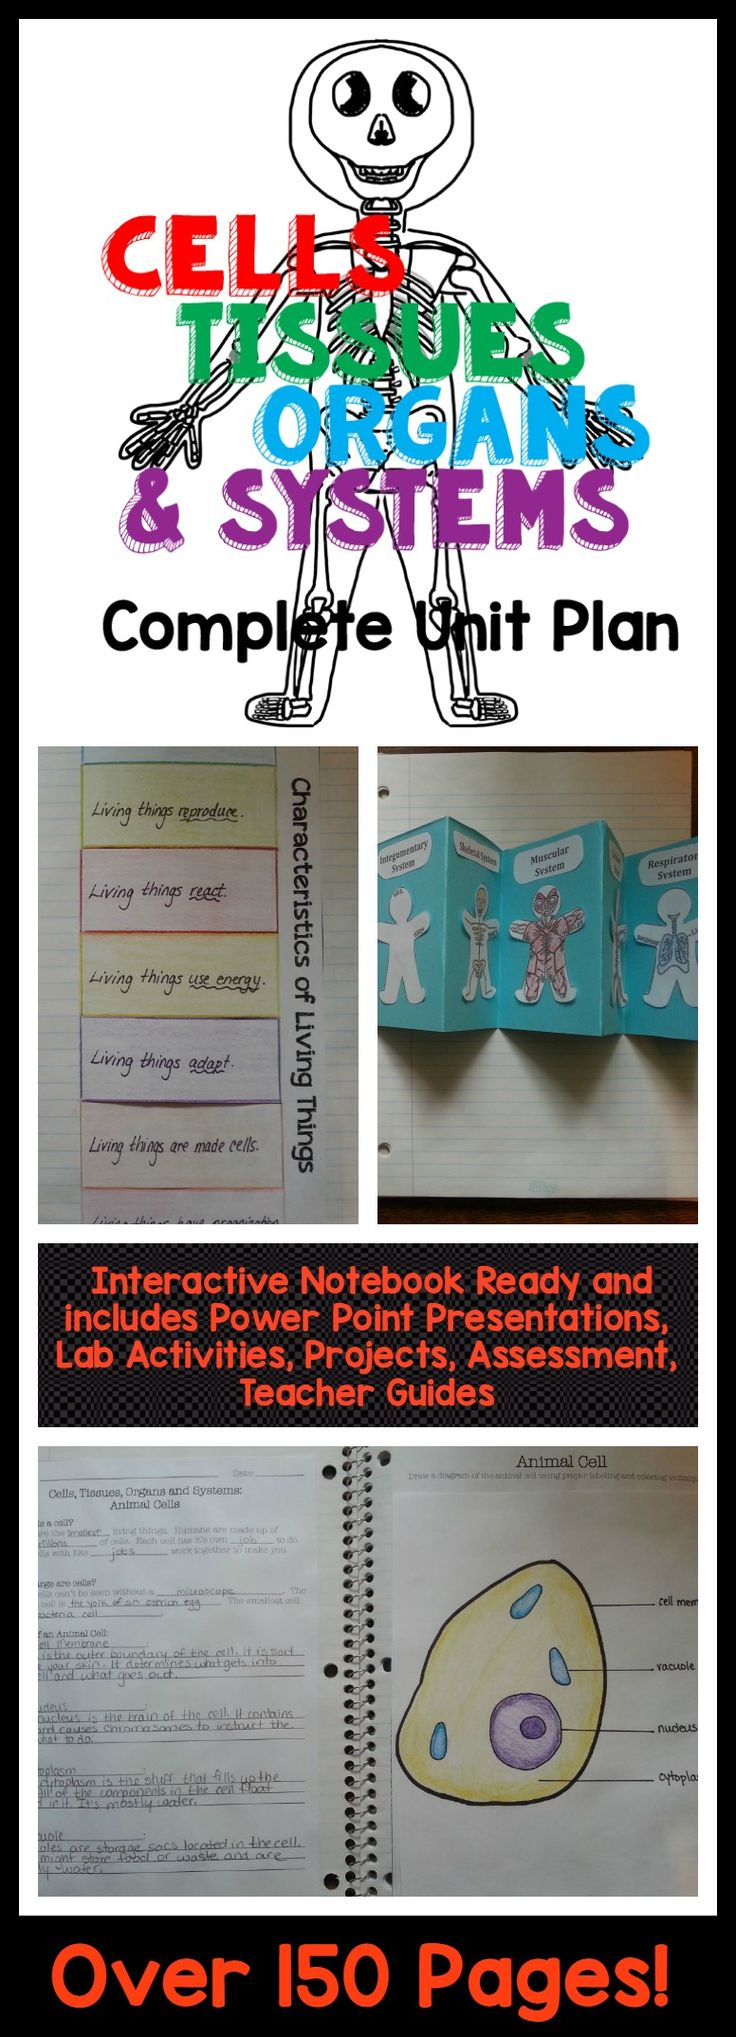 Amazing unit! This unit has it all! Power points, teacher guide, interactive notebook templates, student notes, assessments, labs, activities, projects and more!